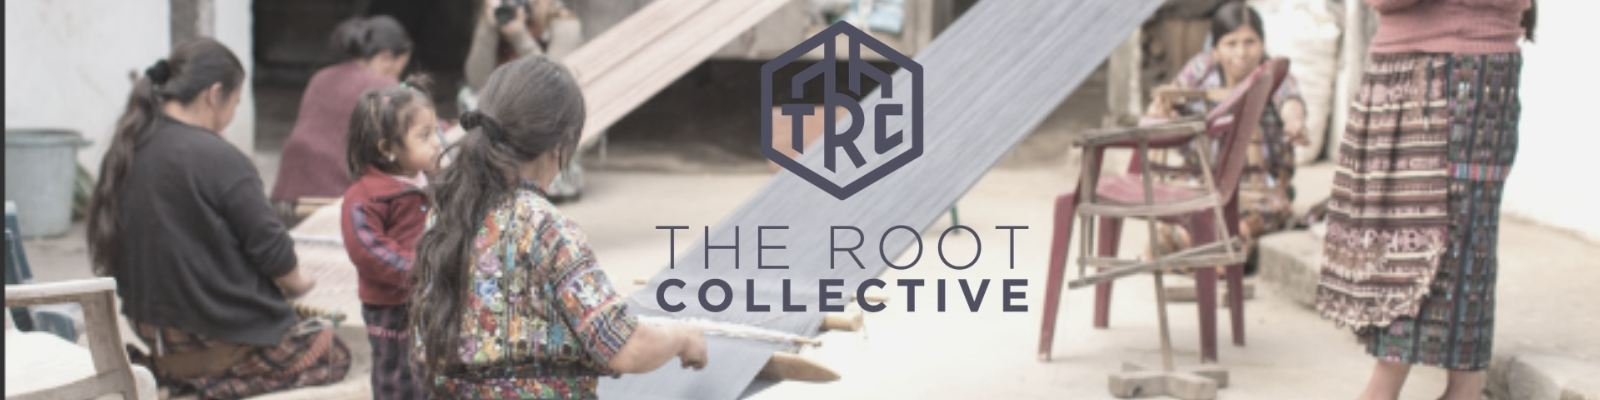 Verte Luxe Eco-Boutiques | The Root Collective Storefront